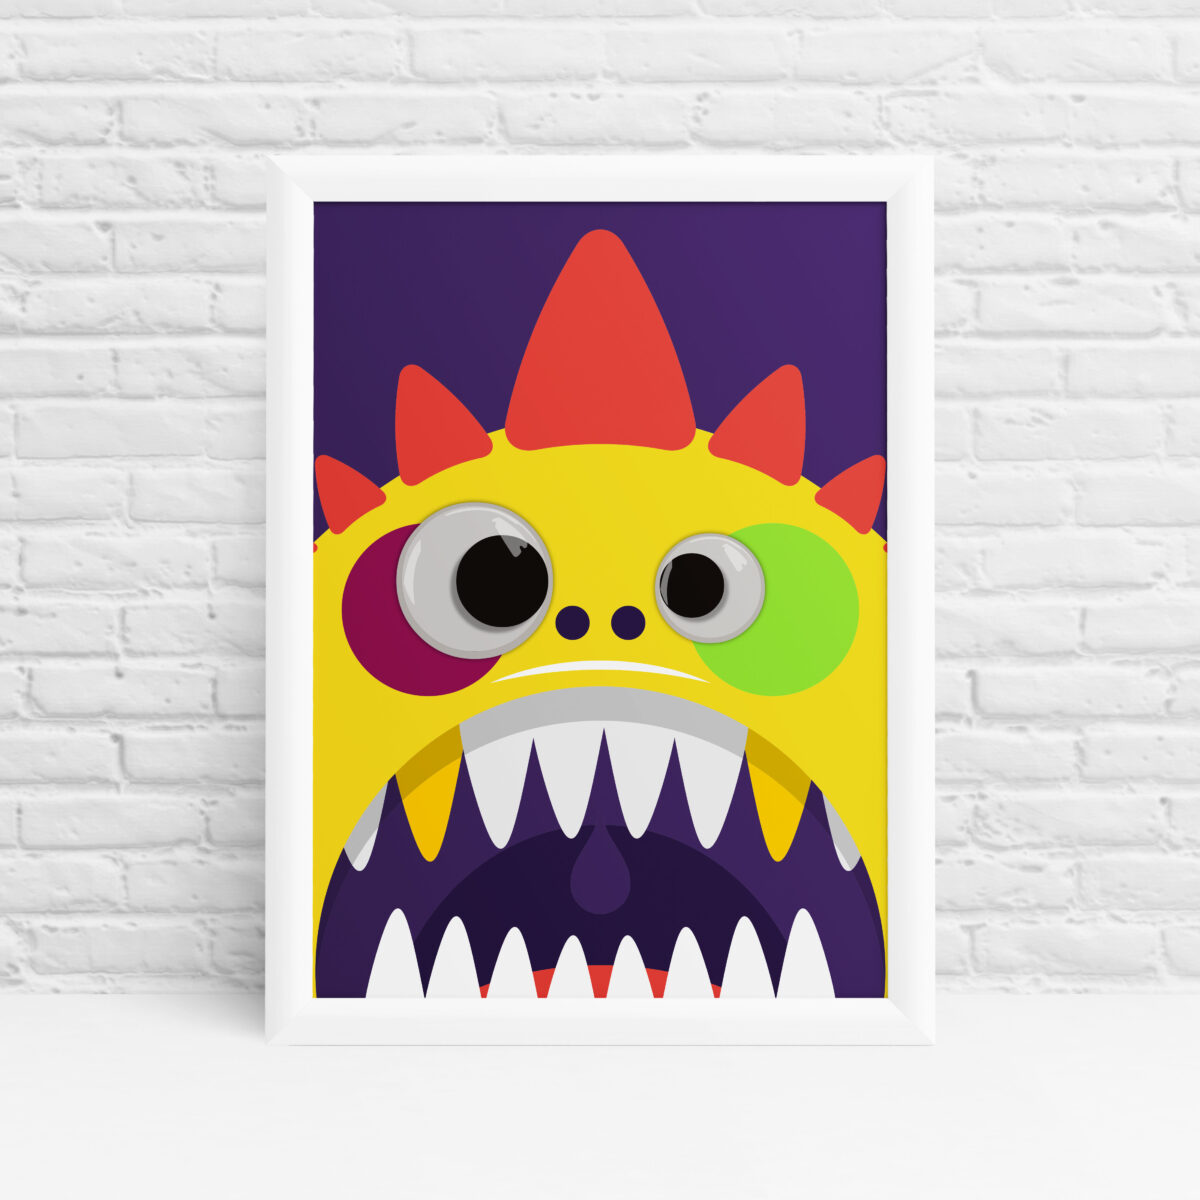 Cute yellow googly eyes monster nusery print by Ibbleobble®